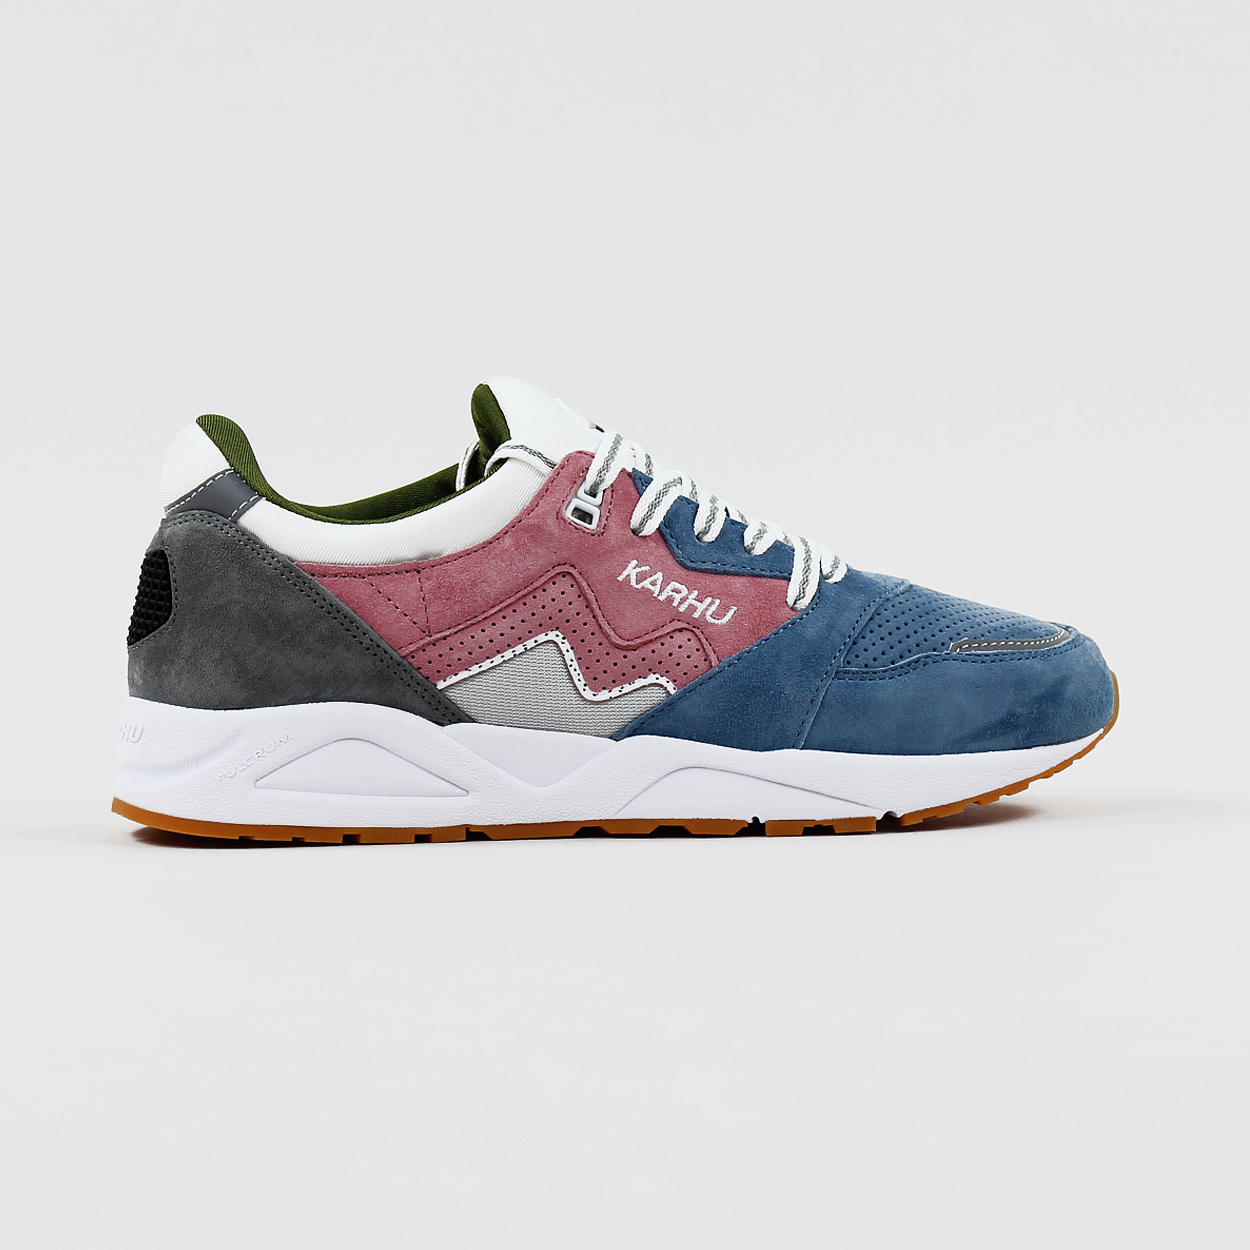 504f70462d9 Karhu Mens Aria Spring Festival Shoes Muted Clay Moonlight Blue £110.00